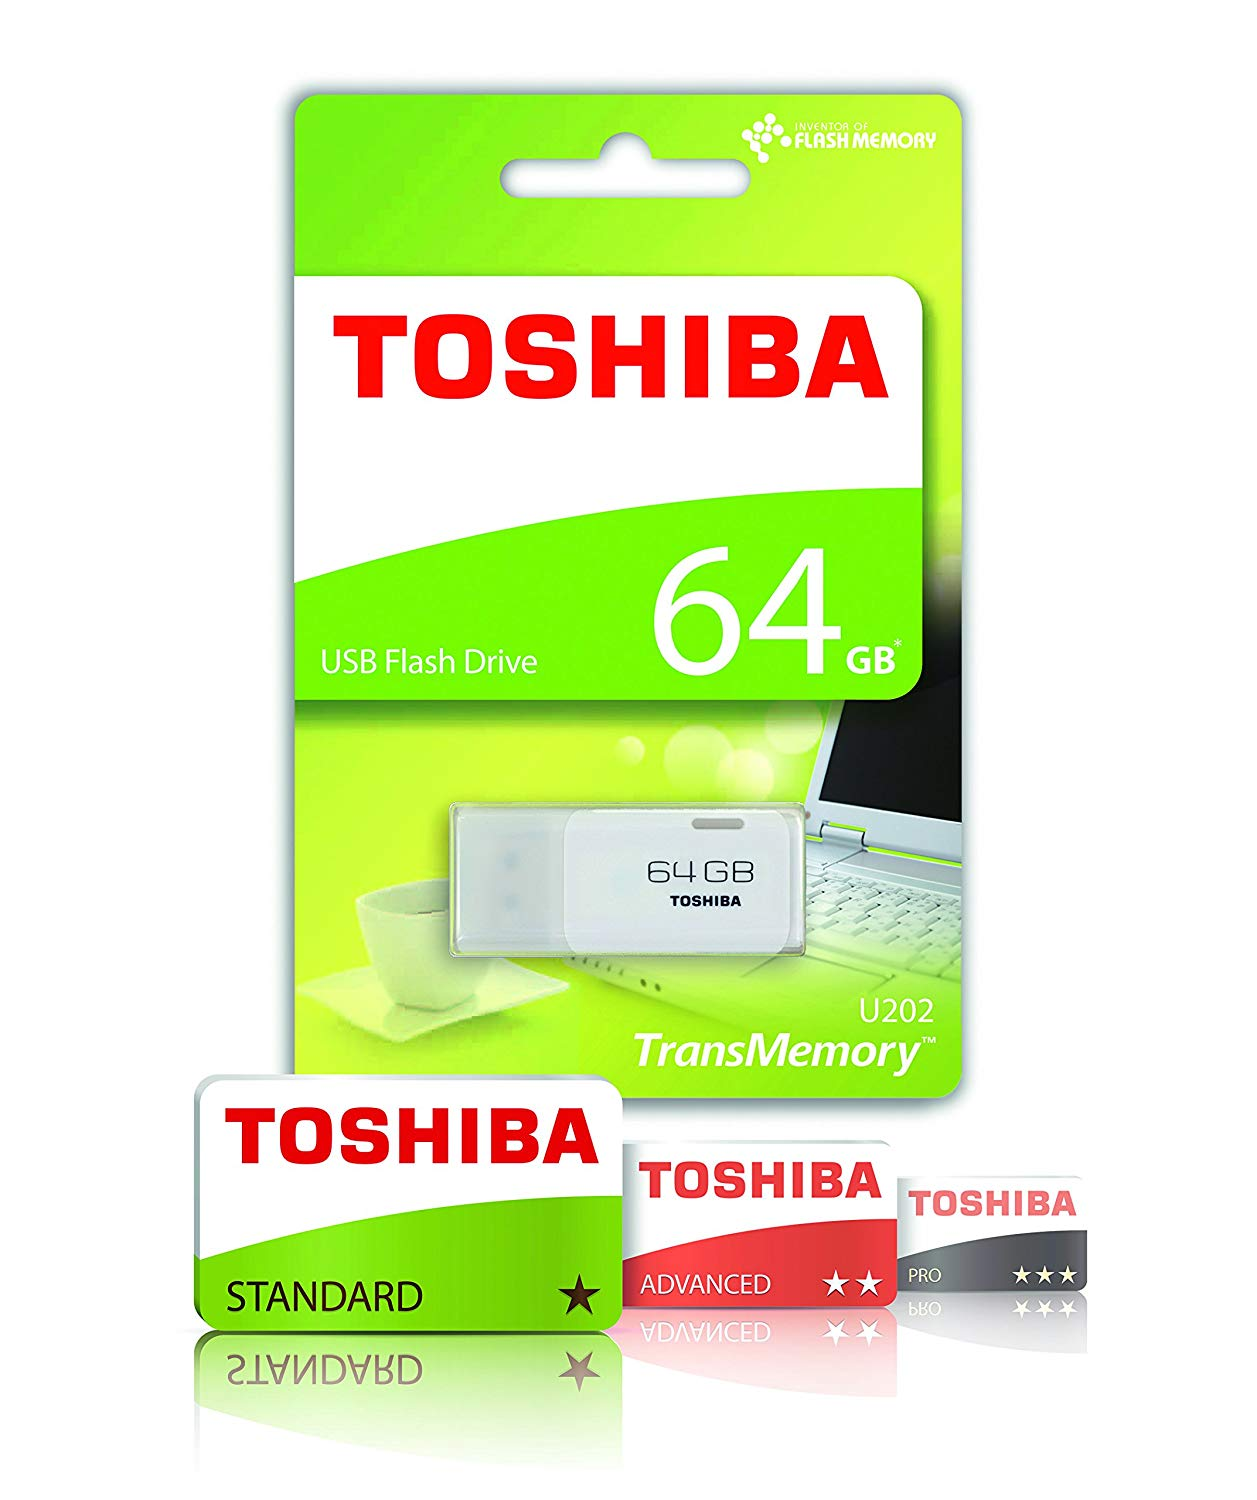 Toshiba 64GB TransMemory USB 2.0 Flash Drive - White